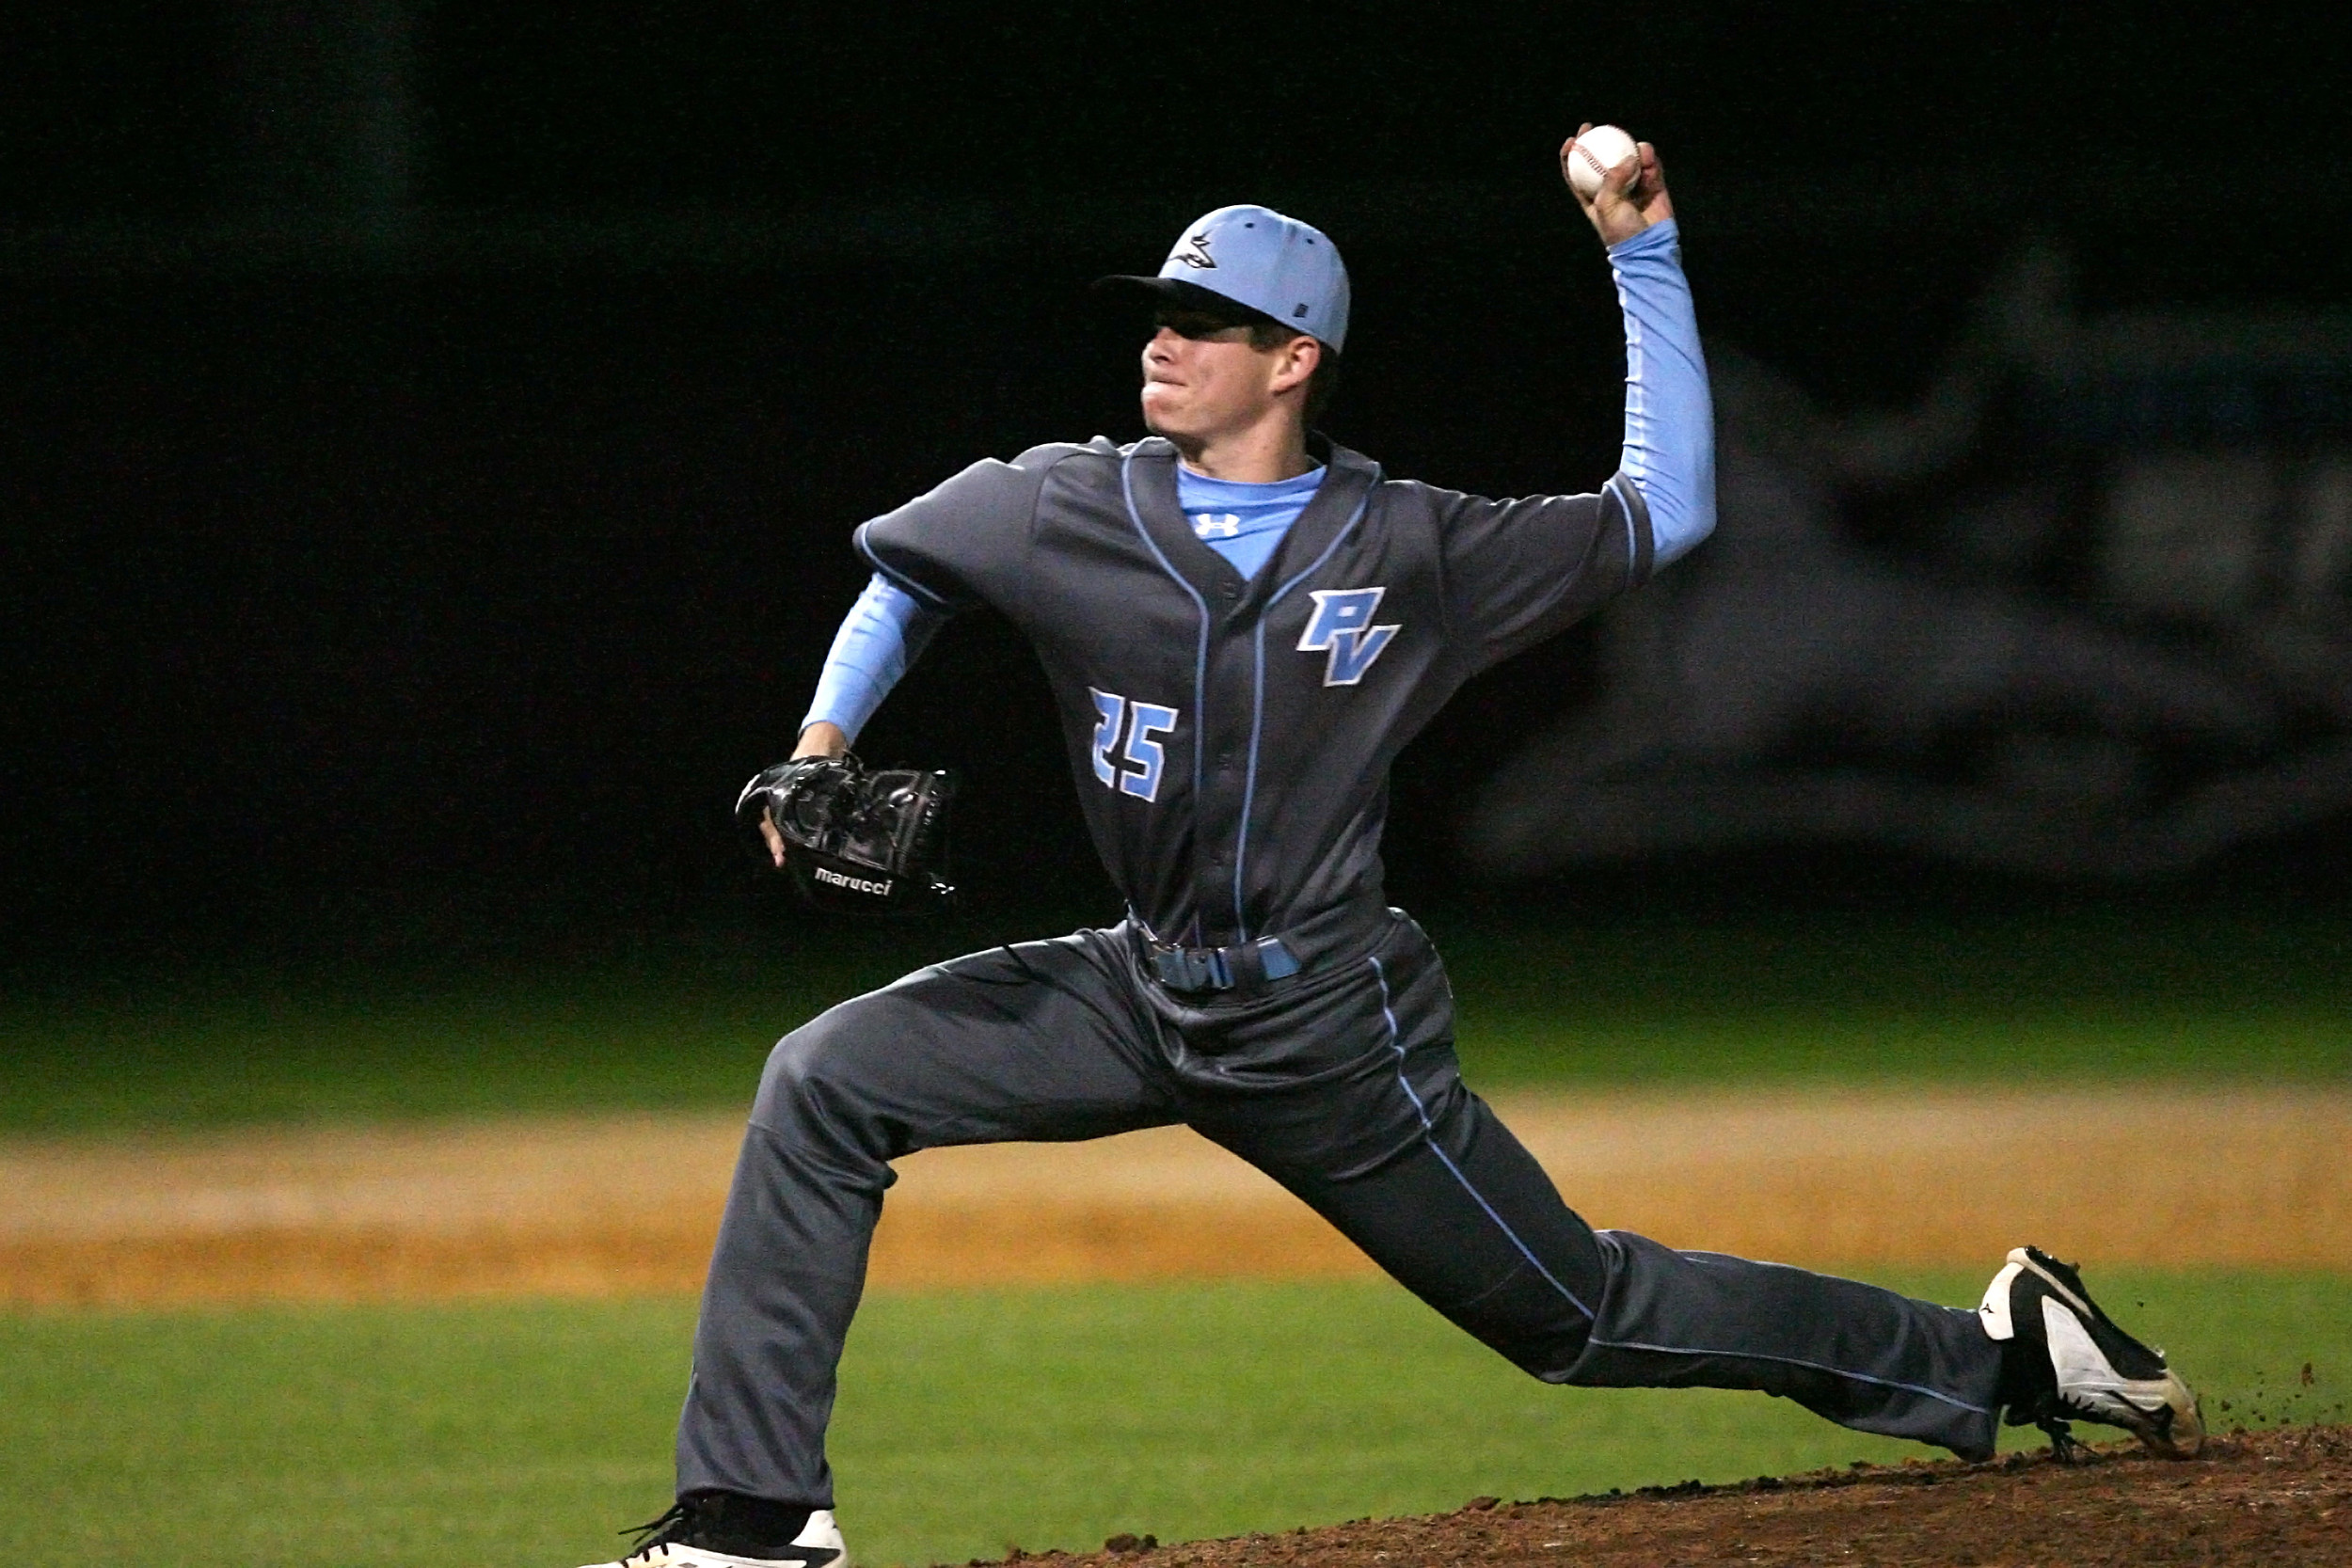 -#25 Lefty Kevin Faulkner comes on in relief for the Sharks